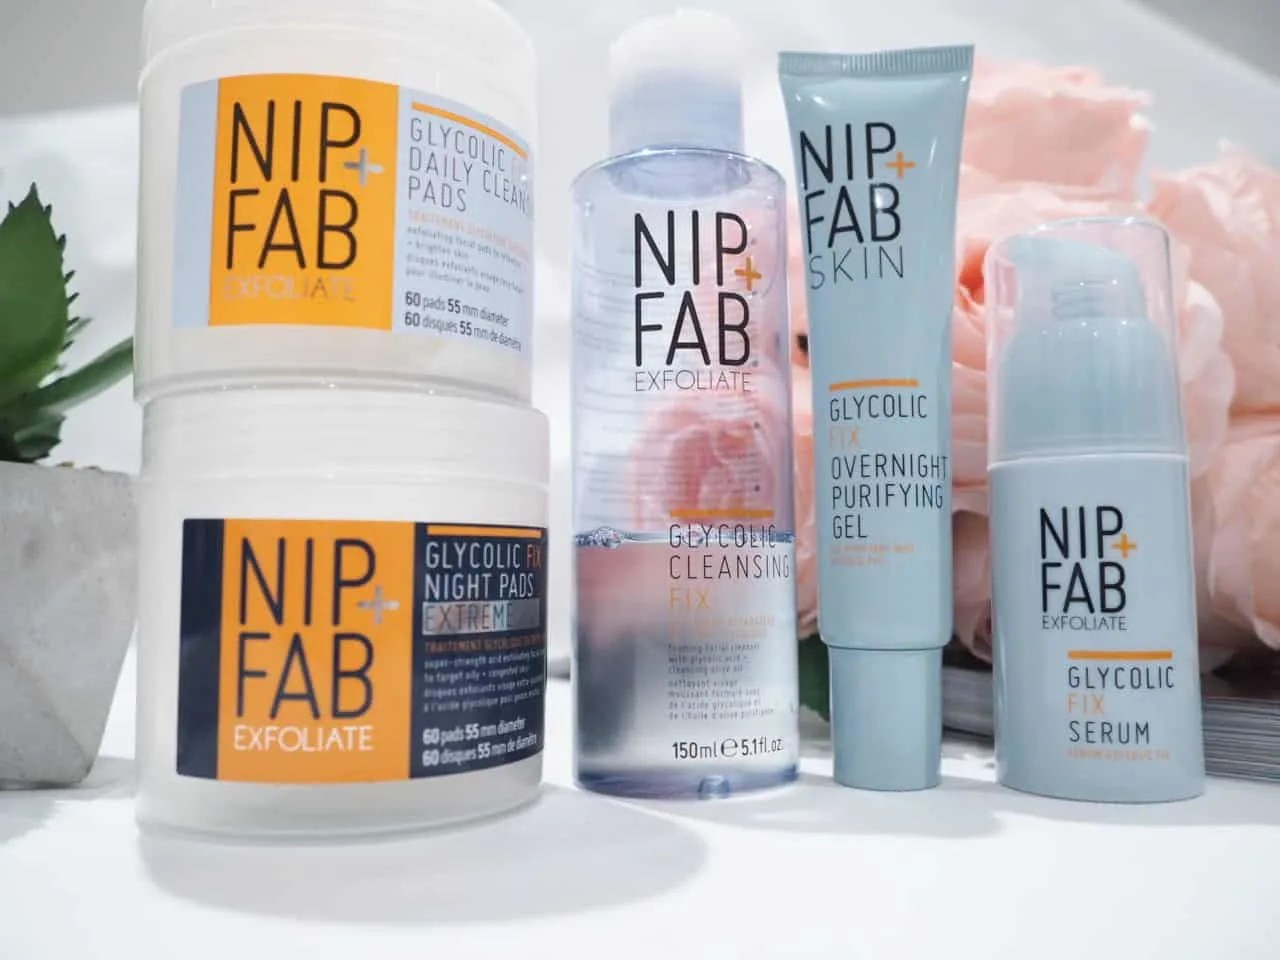 Nip+Fab Glycolic Facial Peel Skincare Review